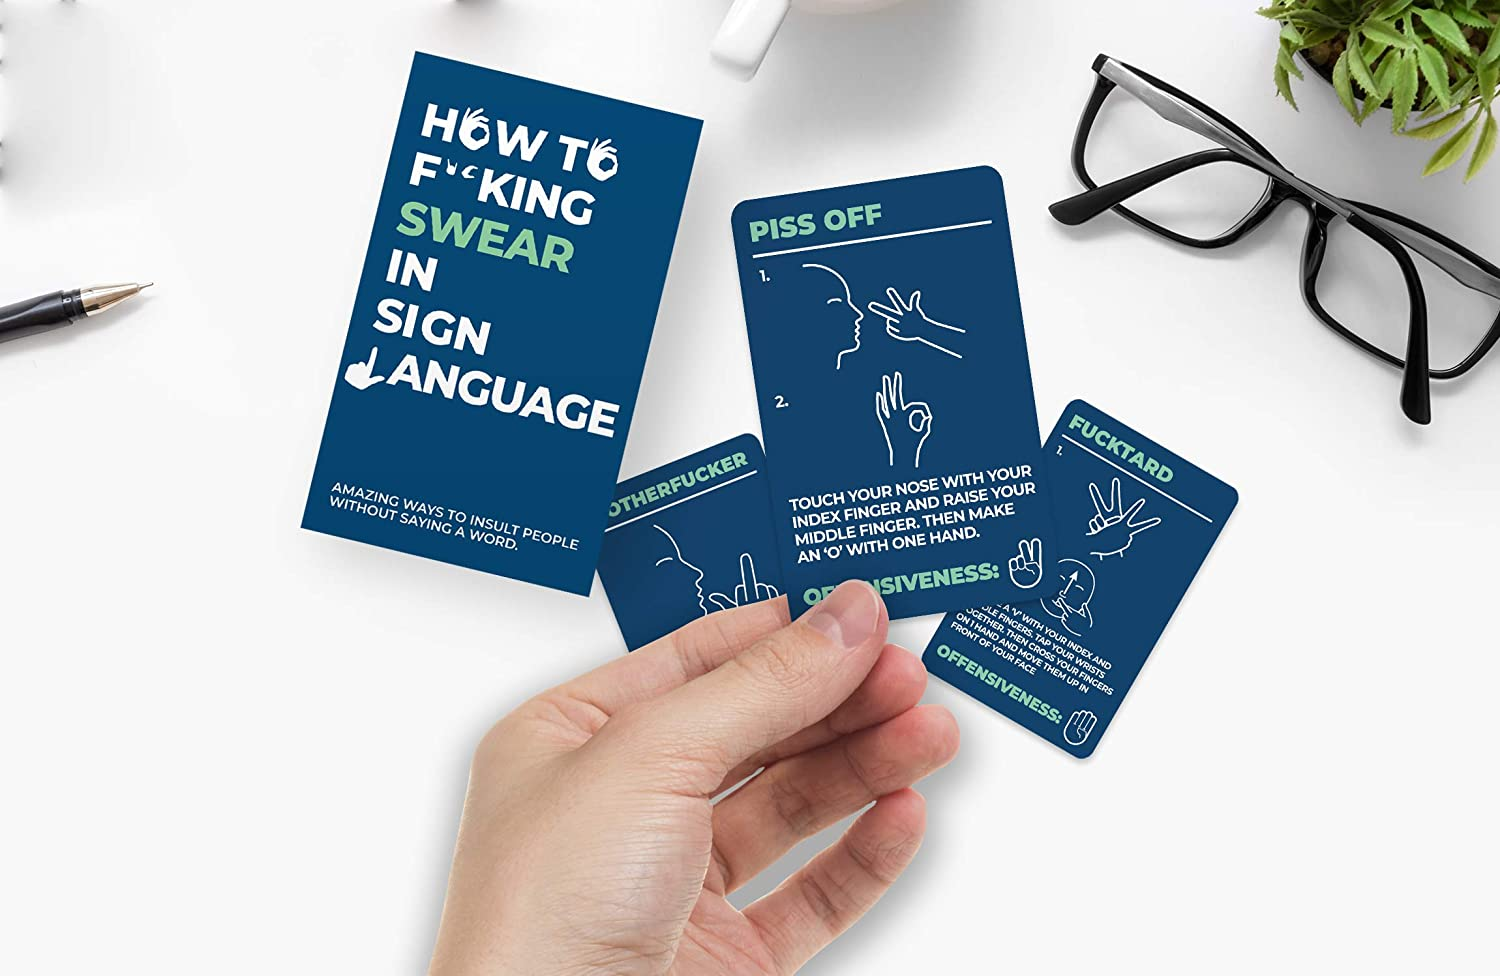 Gift Republic GR490081 How To Swear in Sign Language Cards